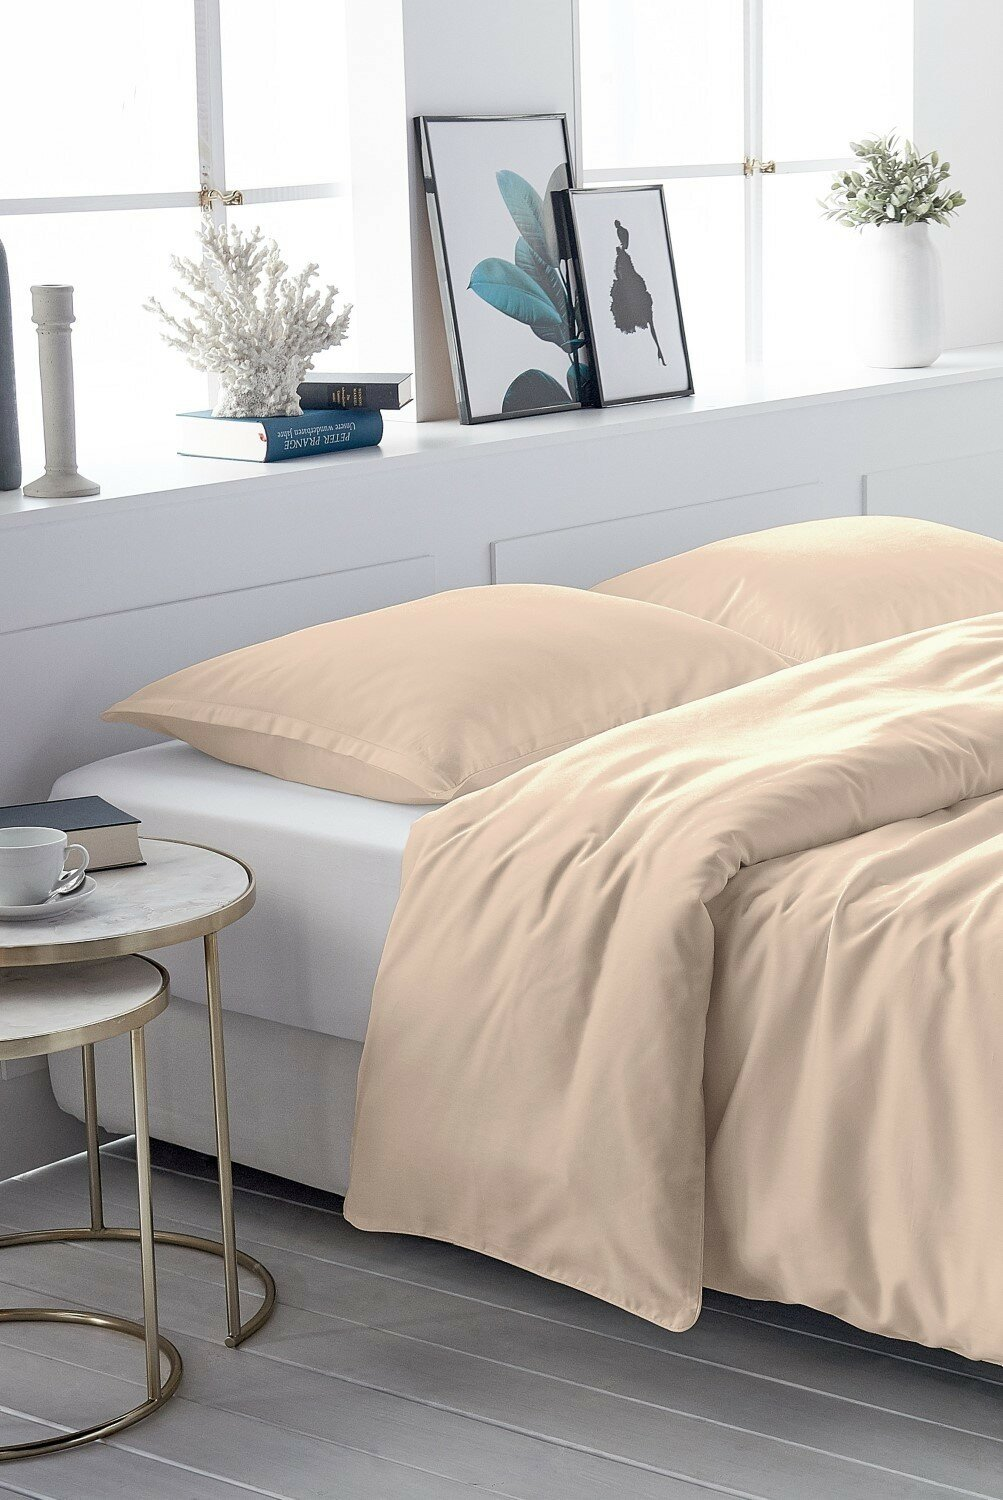 DUVET COVER SATIN-COTTON beige 077